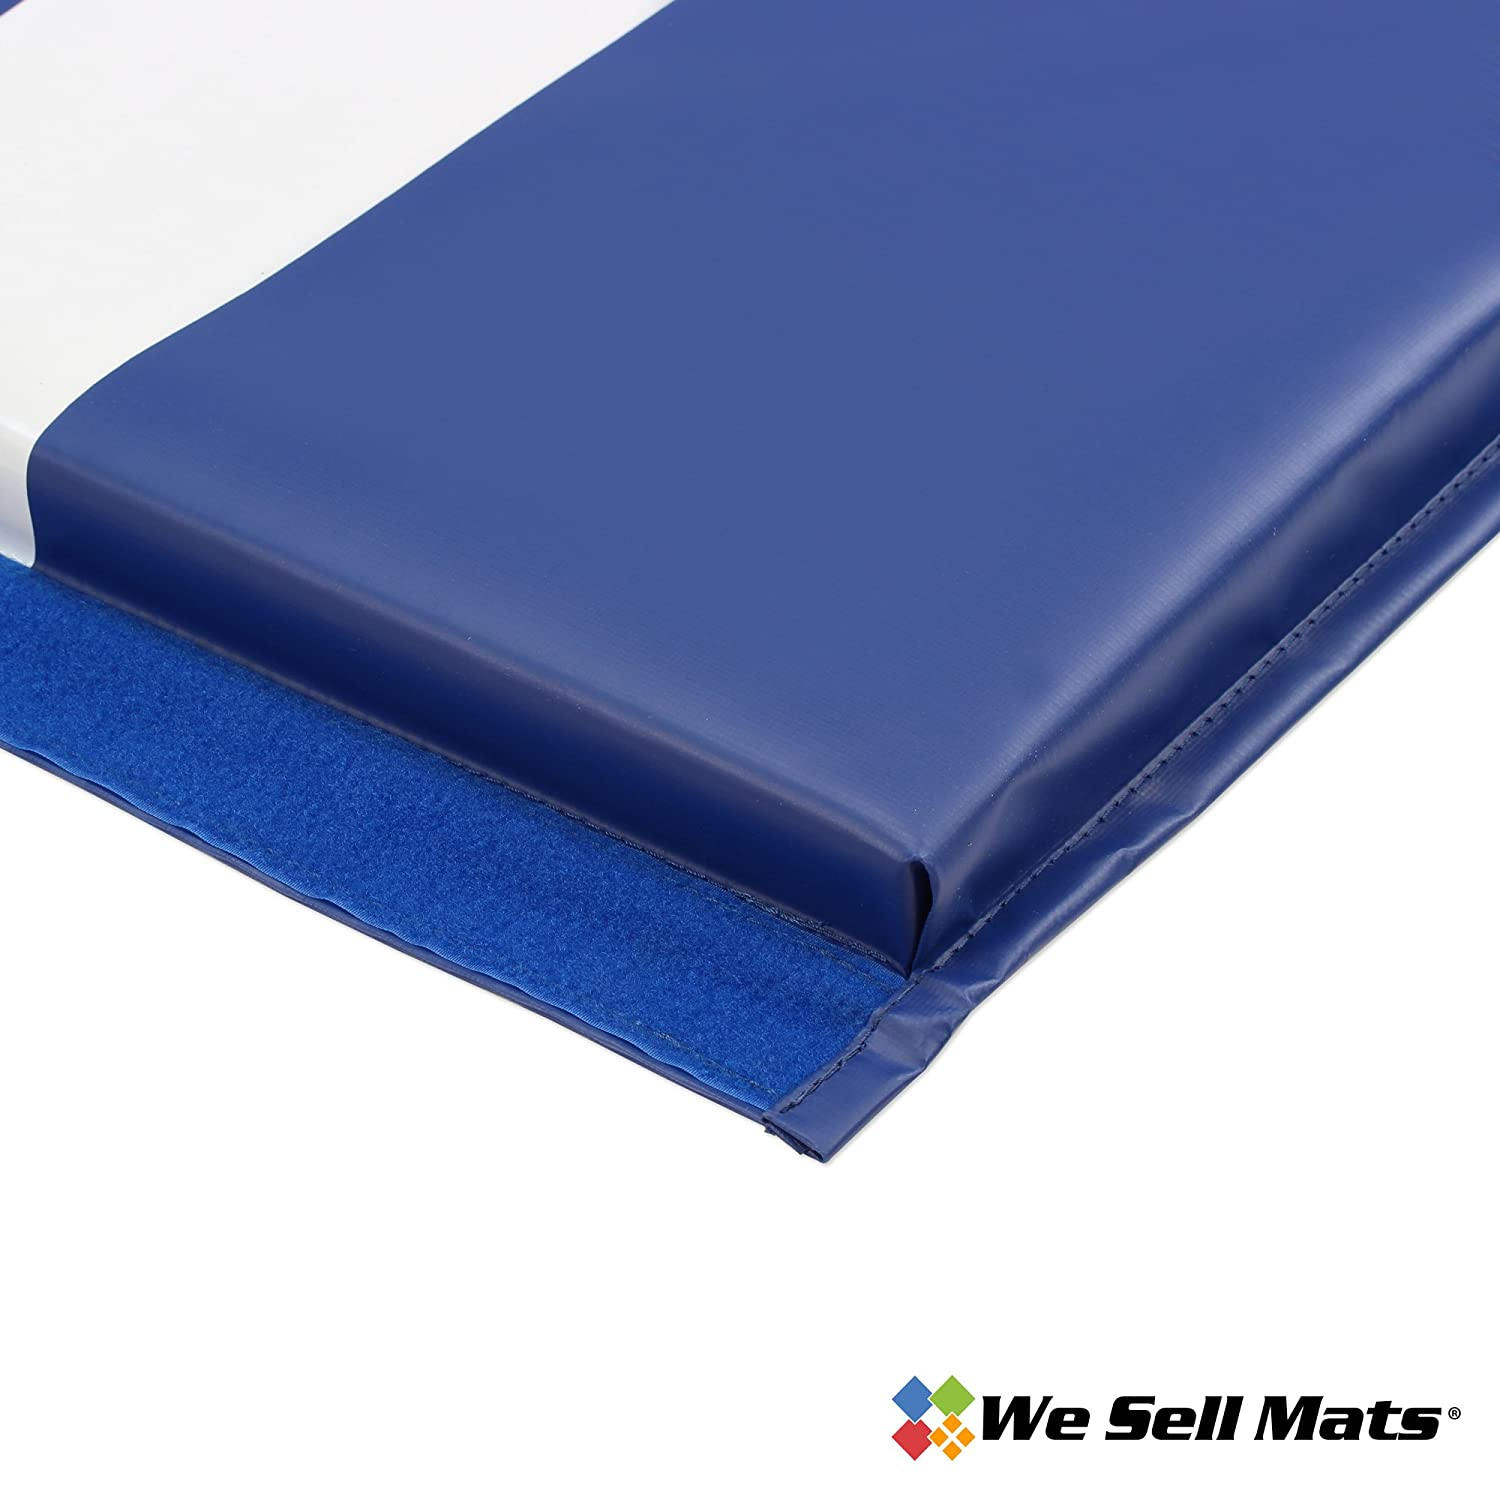 pin use and mat china beginners sports we home gymnastics designed mats by diy center training for